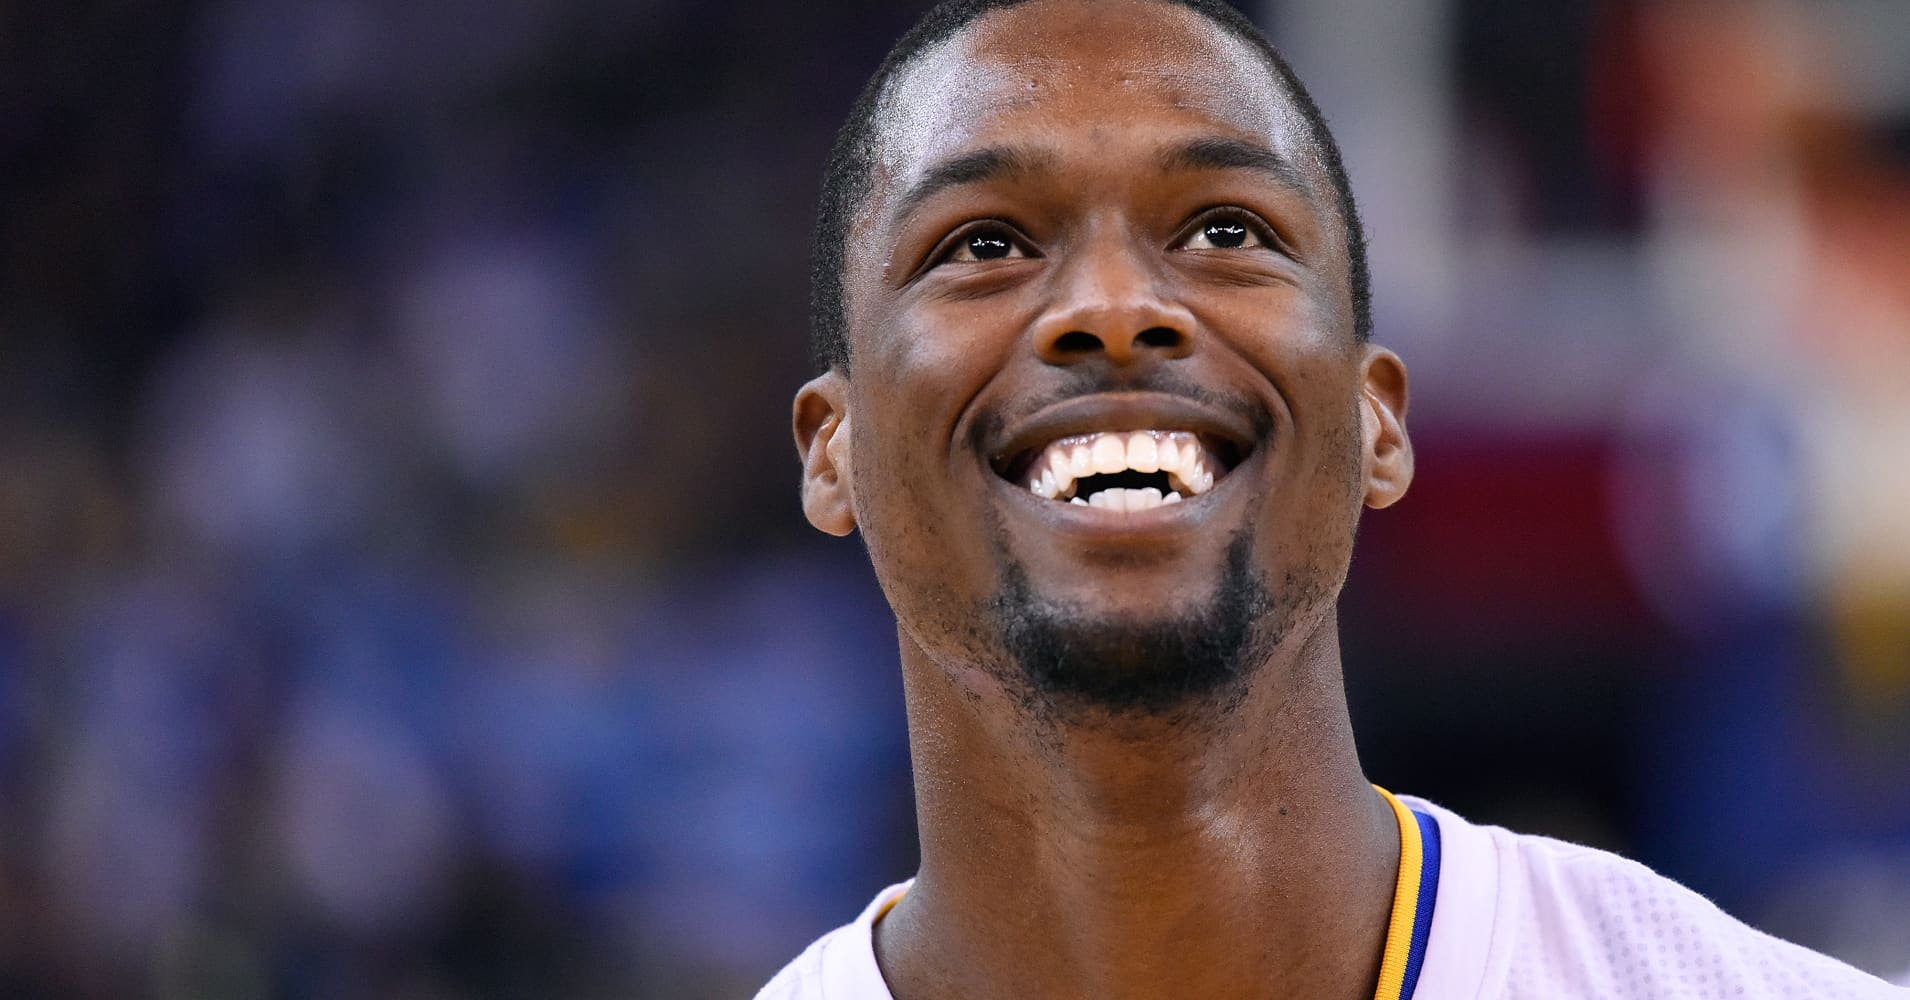 NBA star Harrison Barnes